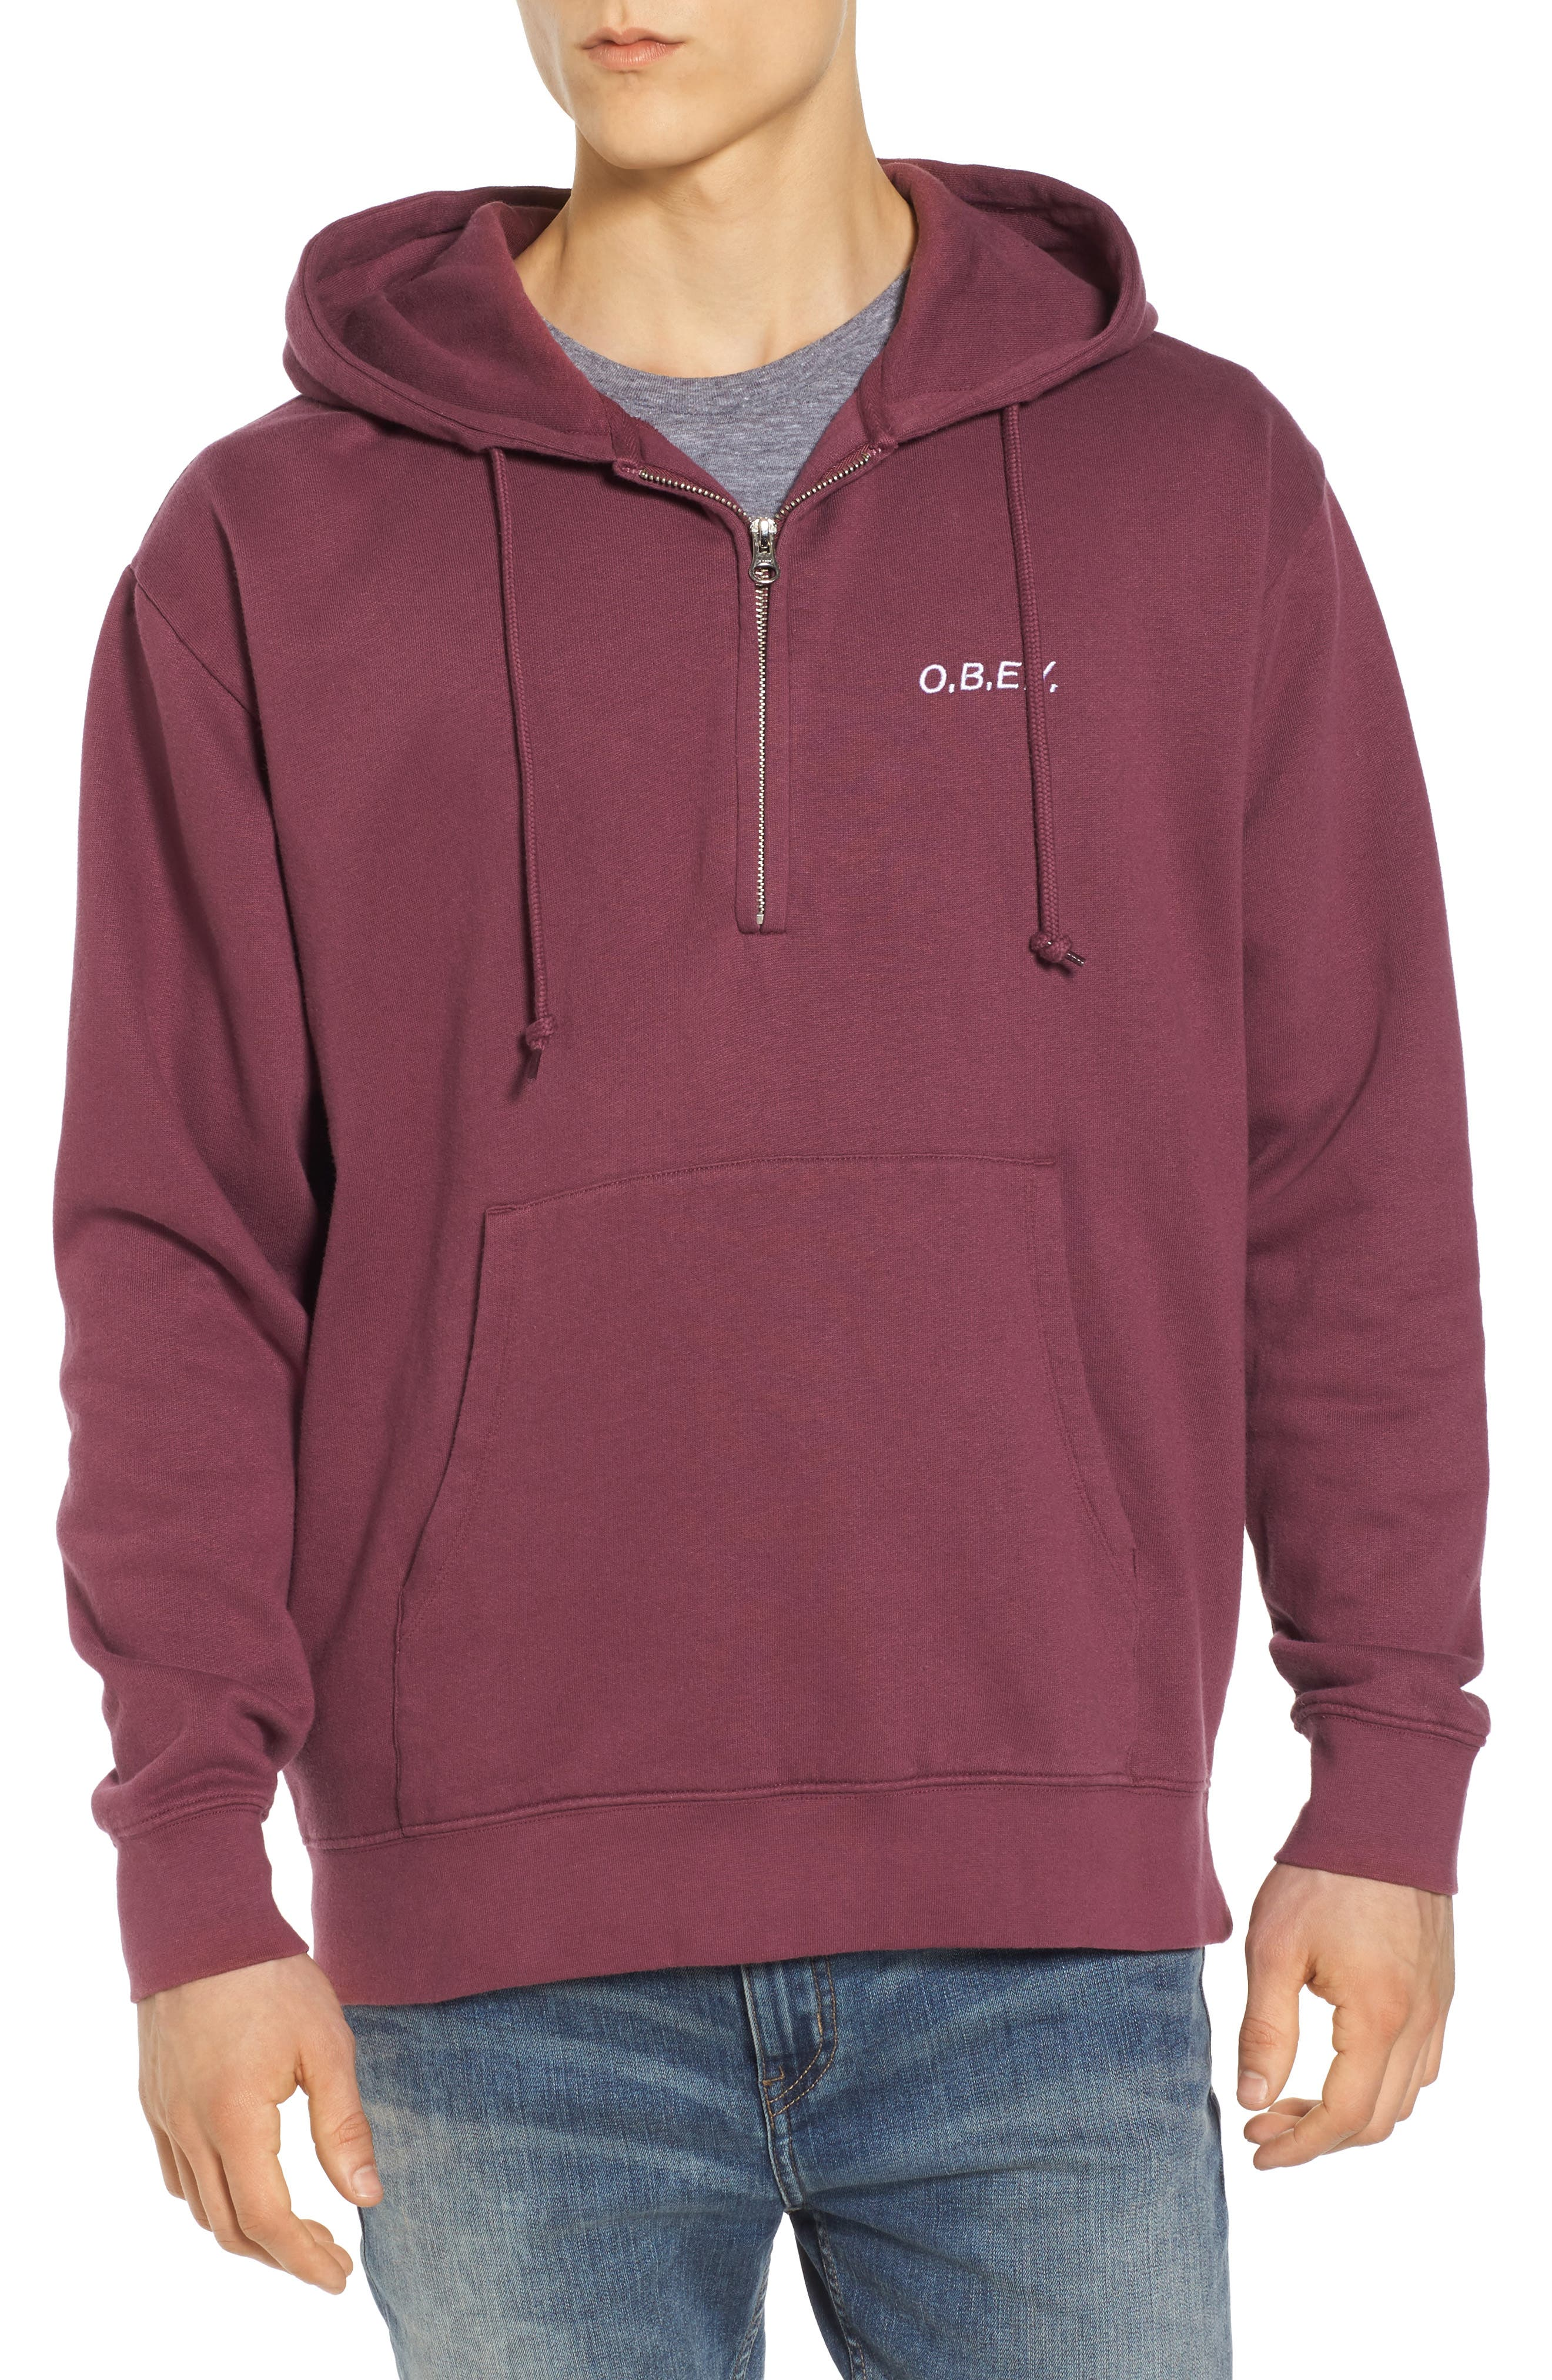 Alternate Image 1 Selected - Obey Ennet Hooded Pullover